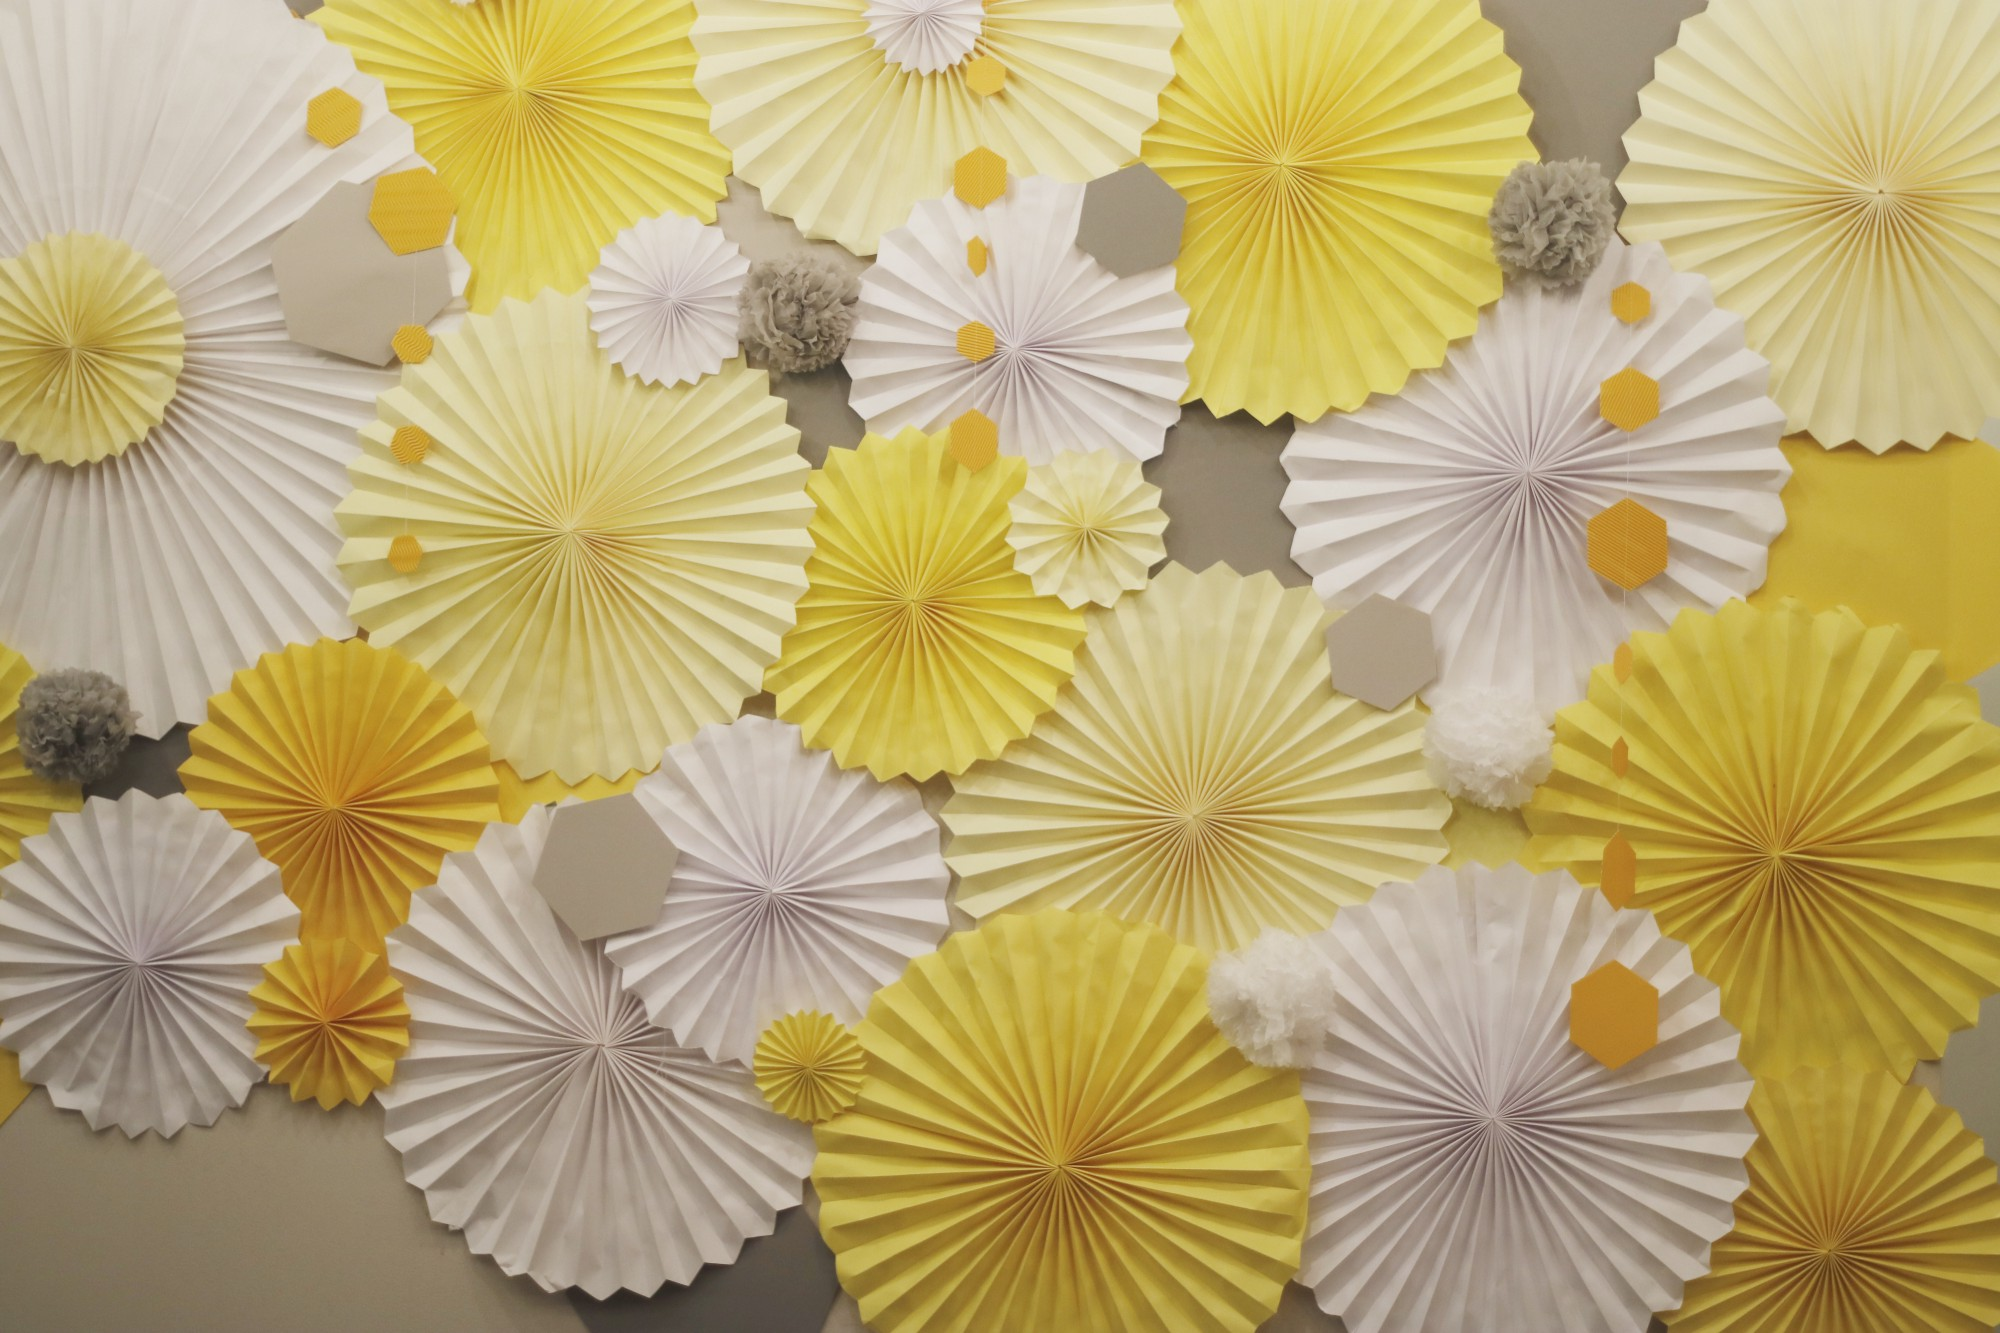 a display of accordion fold paper flowers (or possibly the tops of umbrellas) in shades of yellow